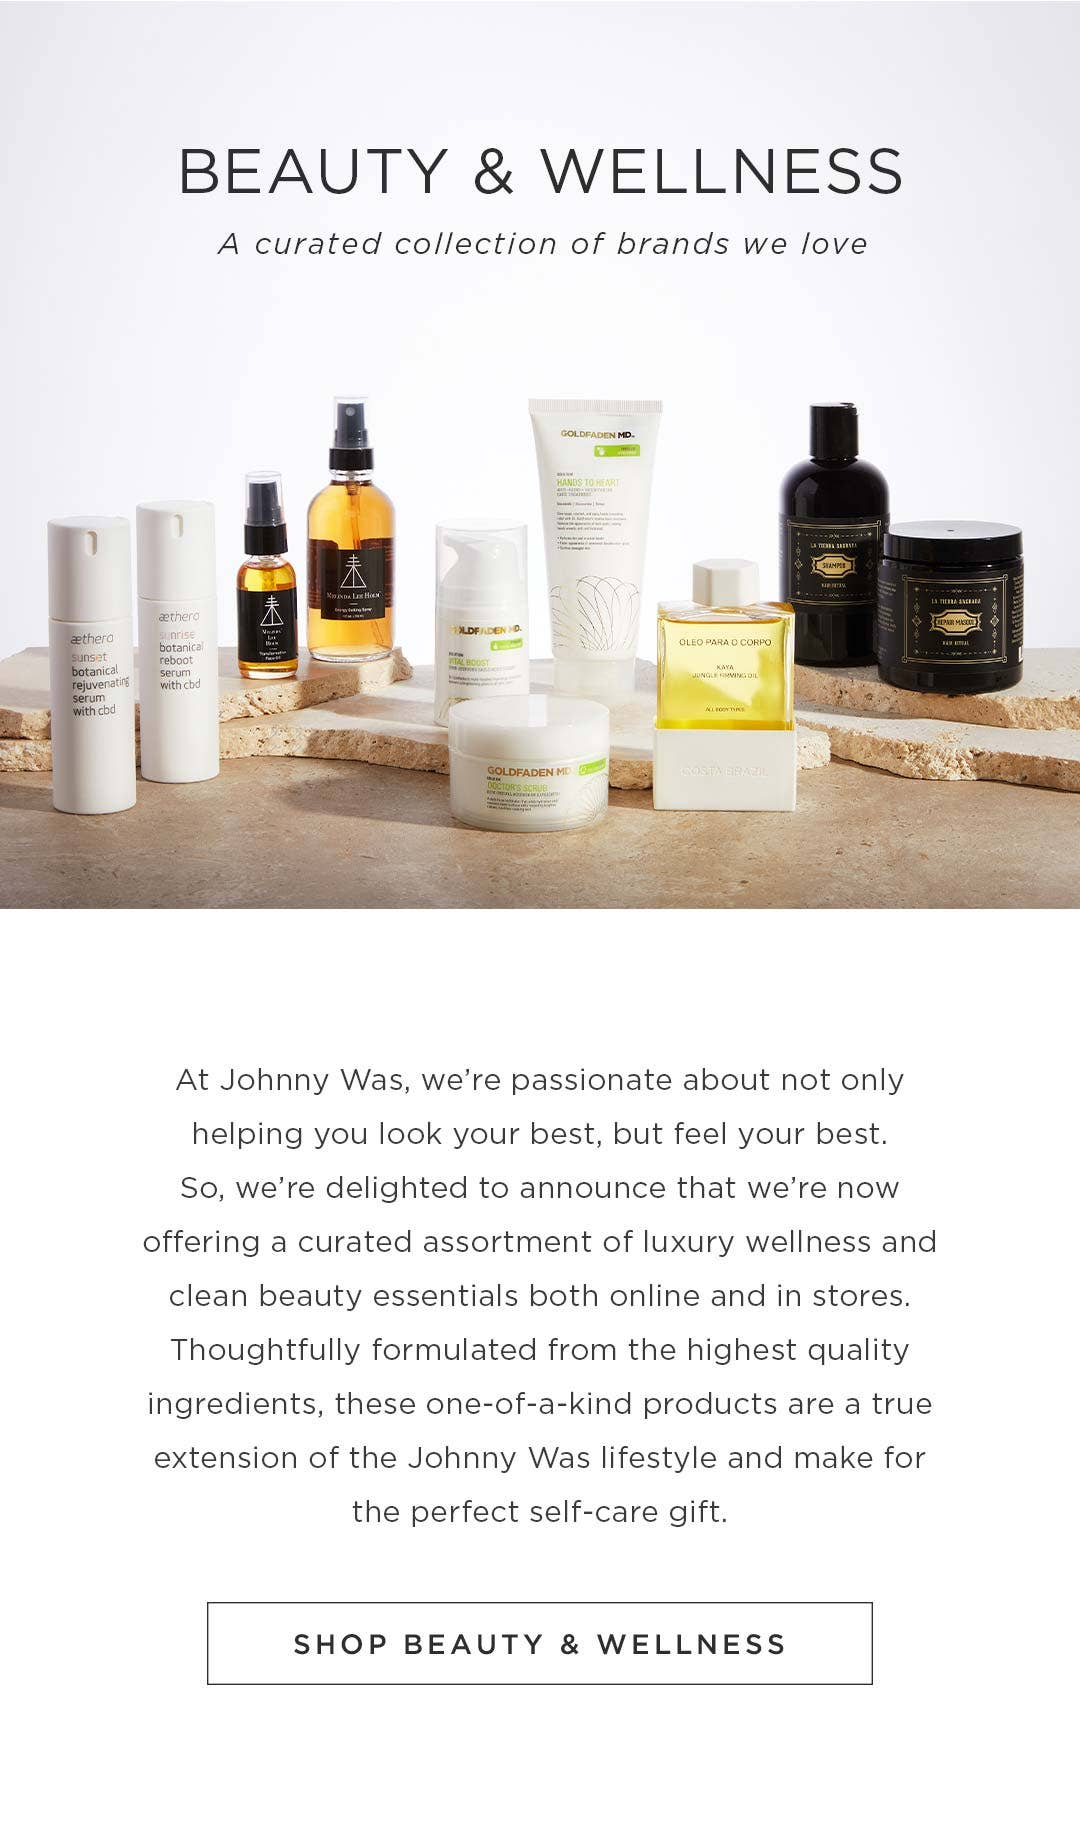 So, we're delighted to announce that we're now offering a curated assortment of luxury wellness and clean beauty essentials both online and in stores. Shop Johnny Was Beauty